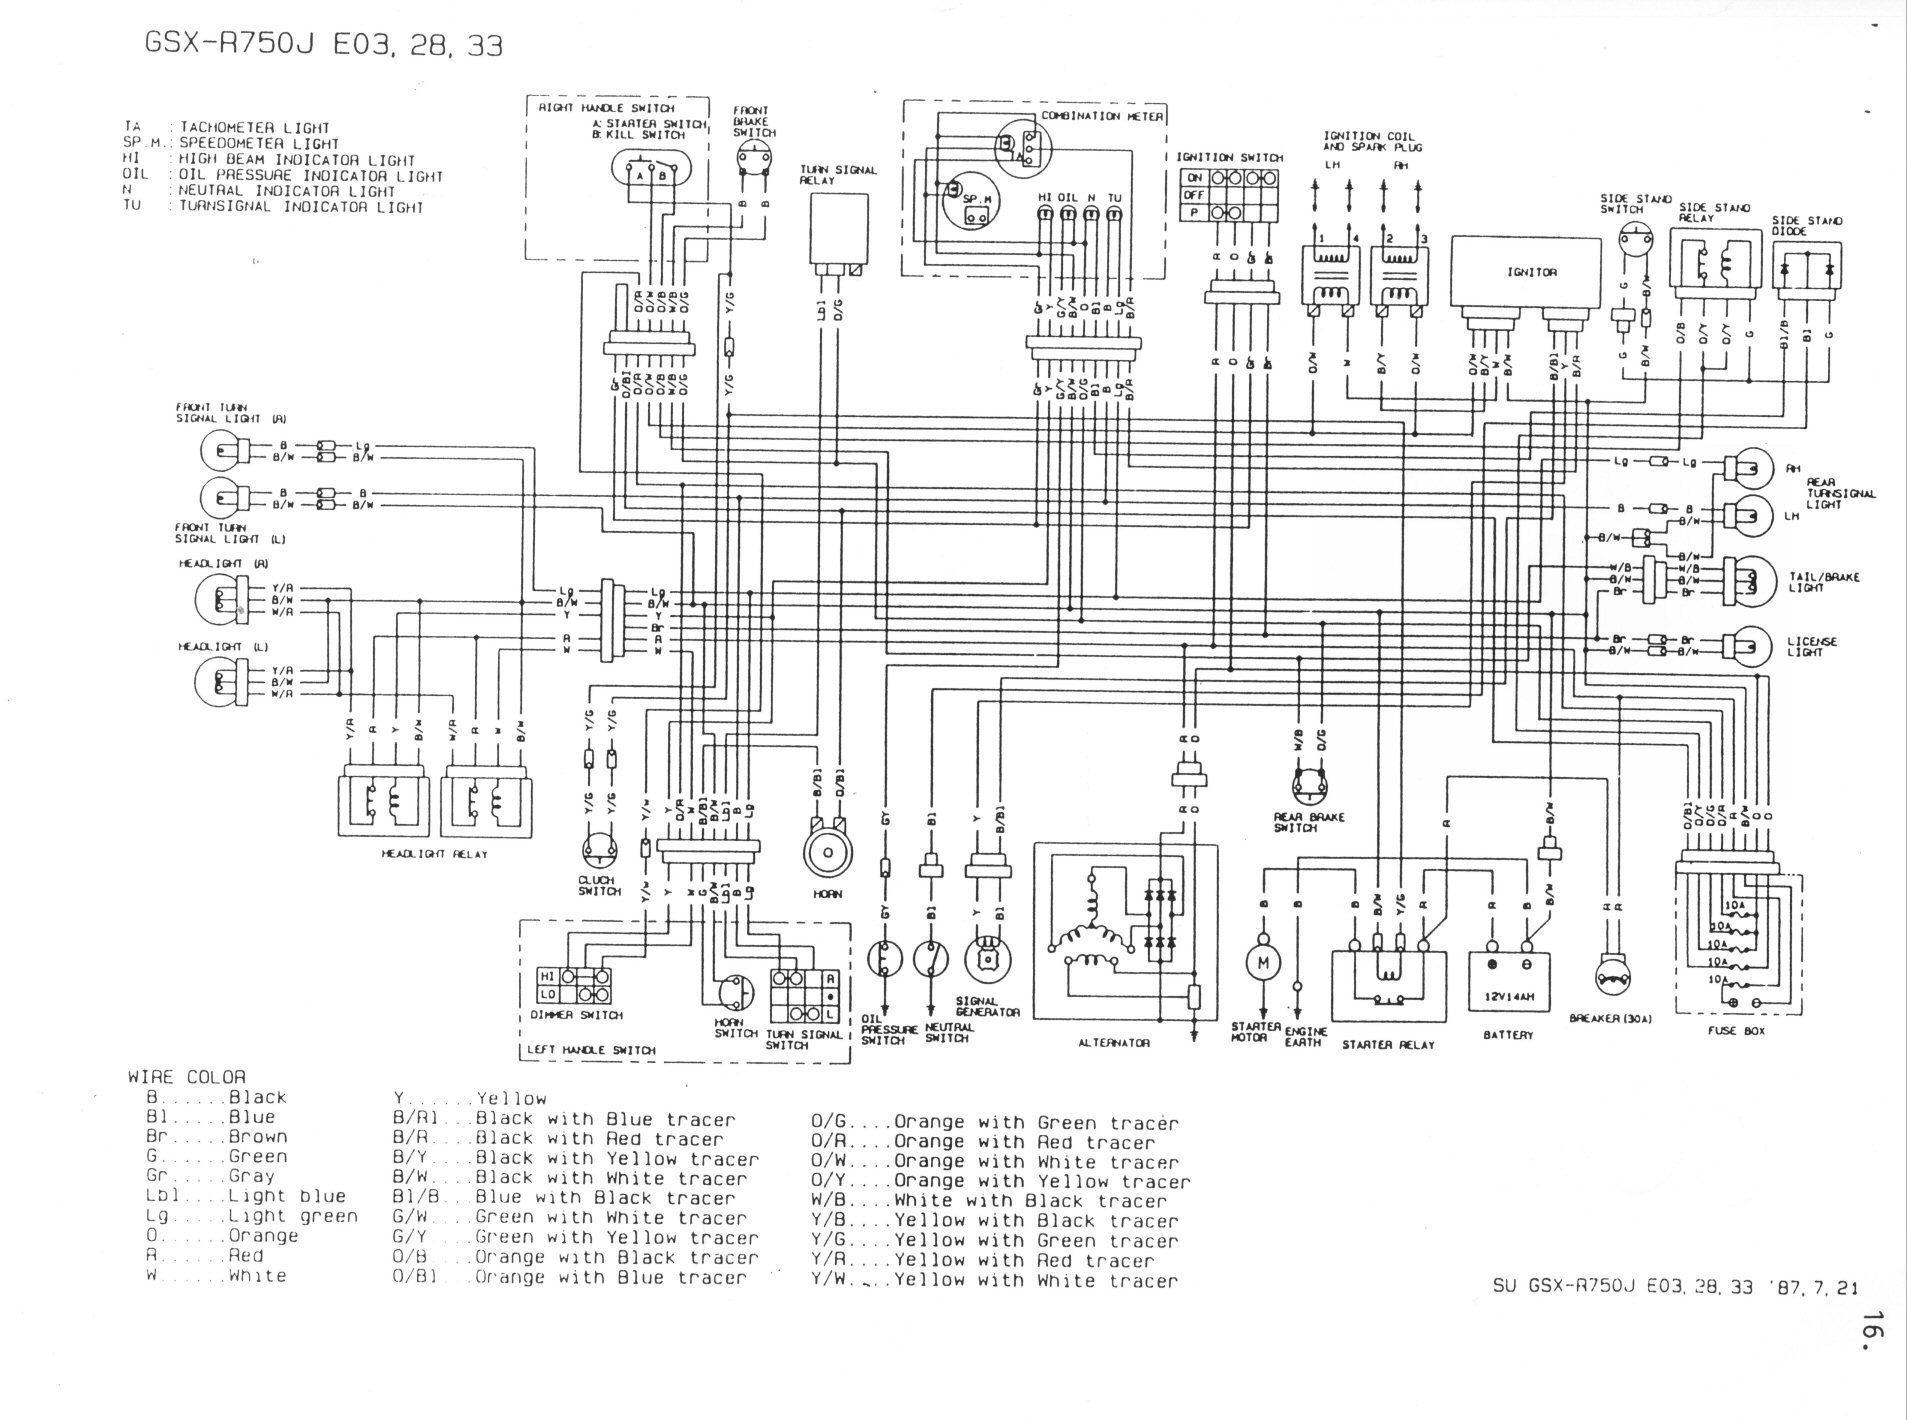 2004 gsxr 750 wiring diagram